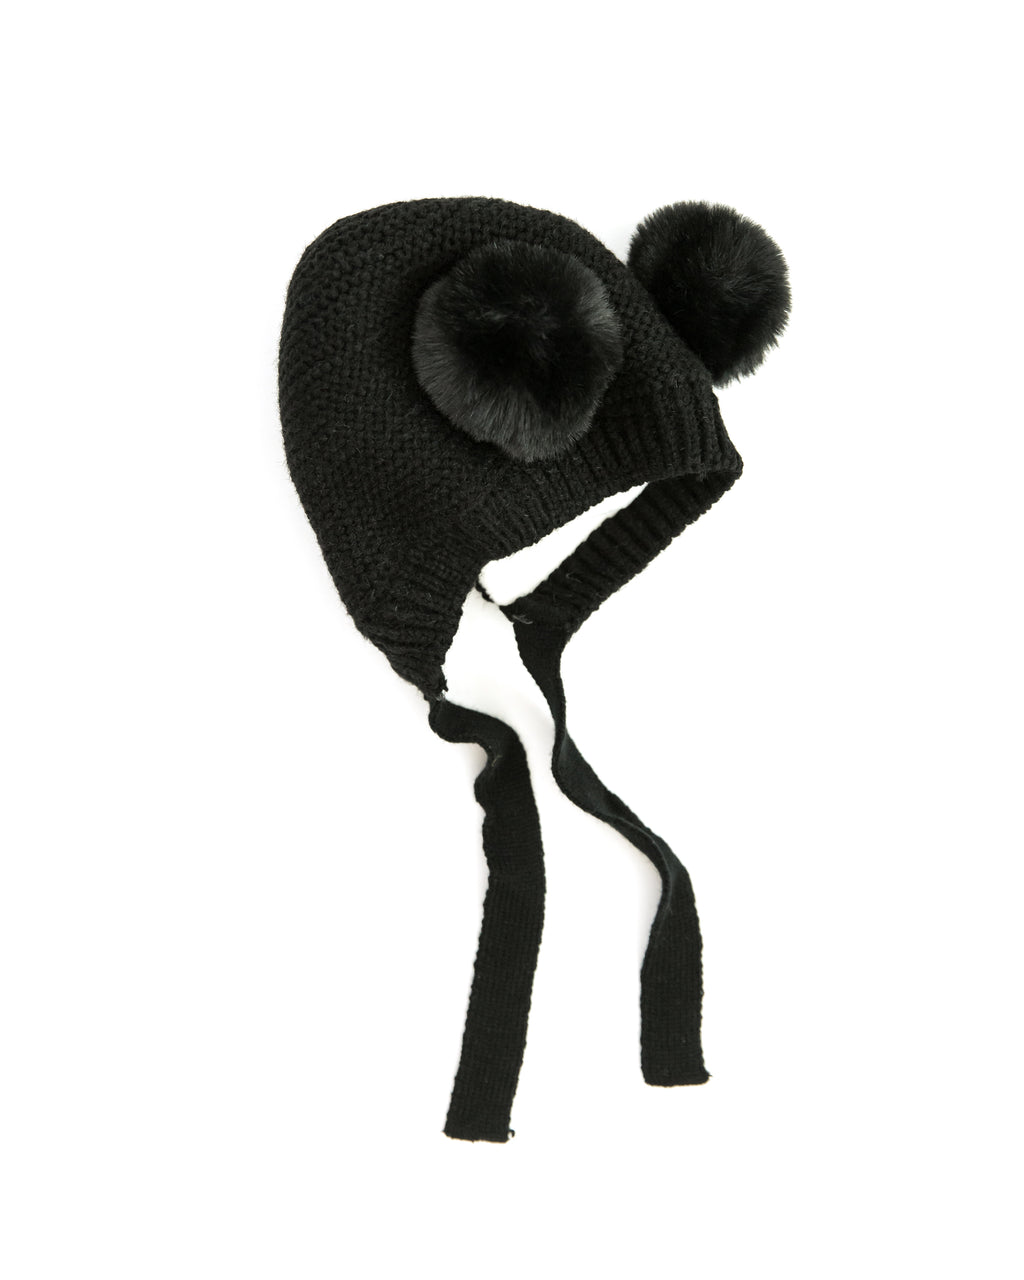 Teddy Knit Beanie in Black - Reverie Threads